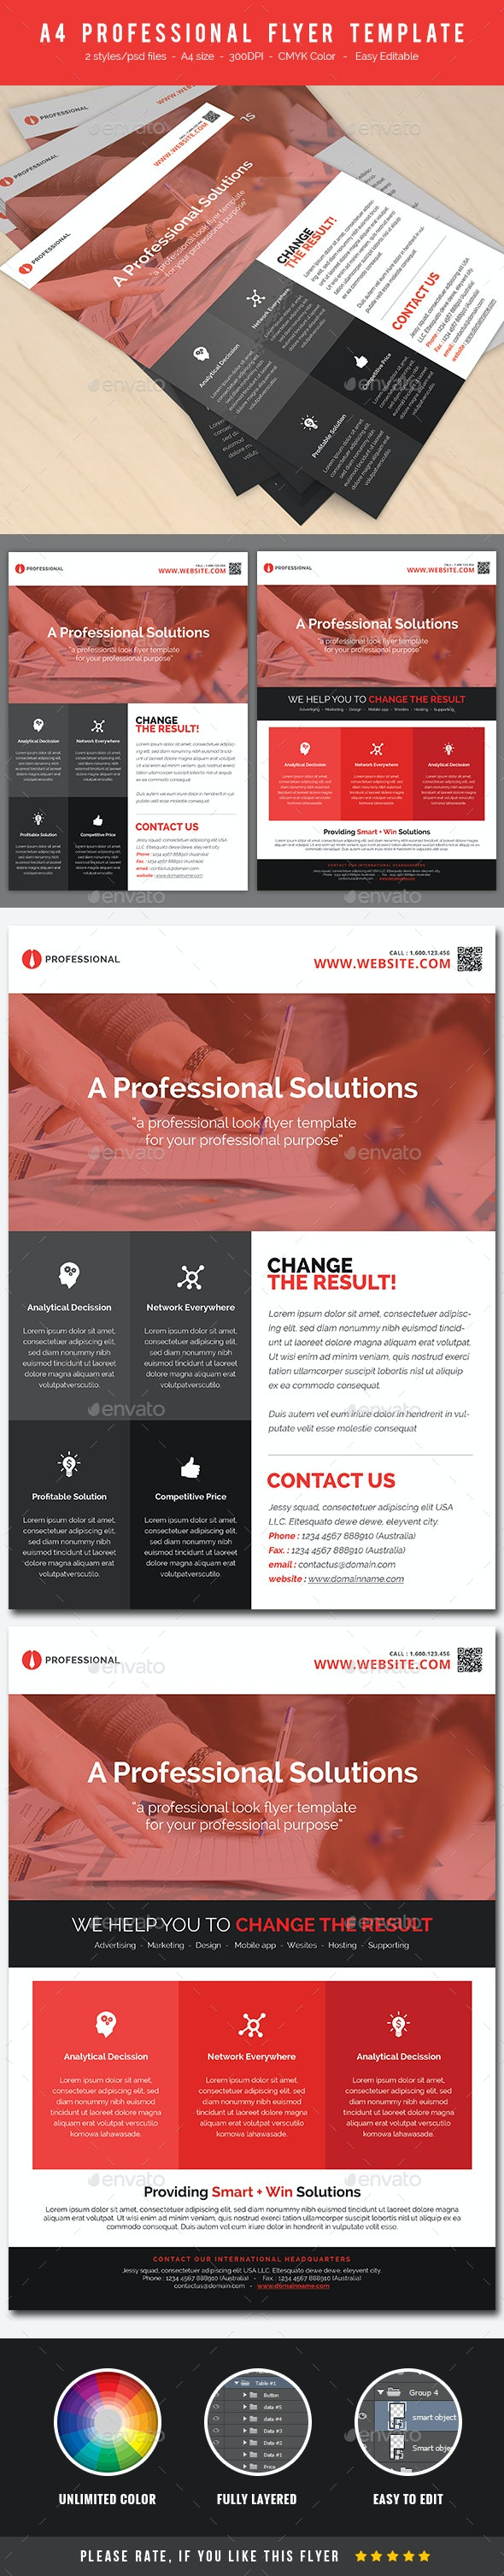 A4 Professional Flyer Template - Corporate Business Cards